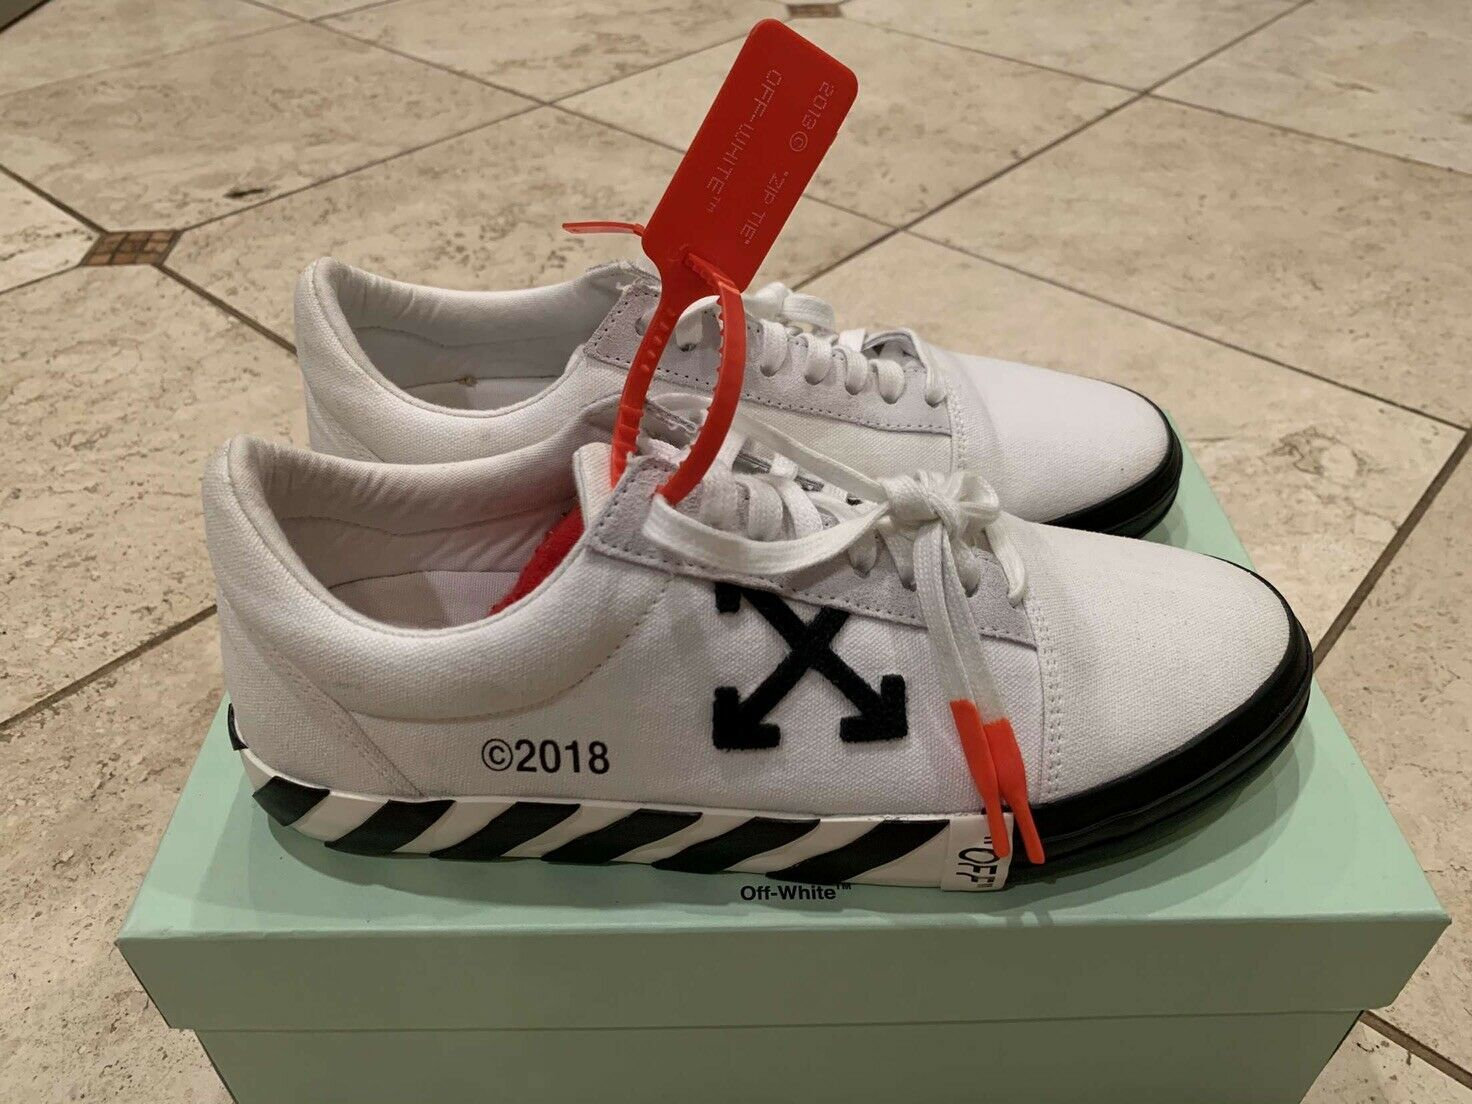 Off White Vulc Low White Updated Stripes